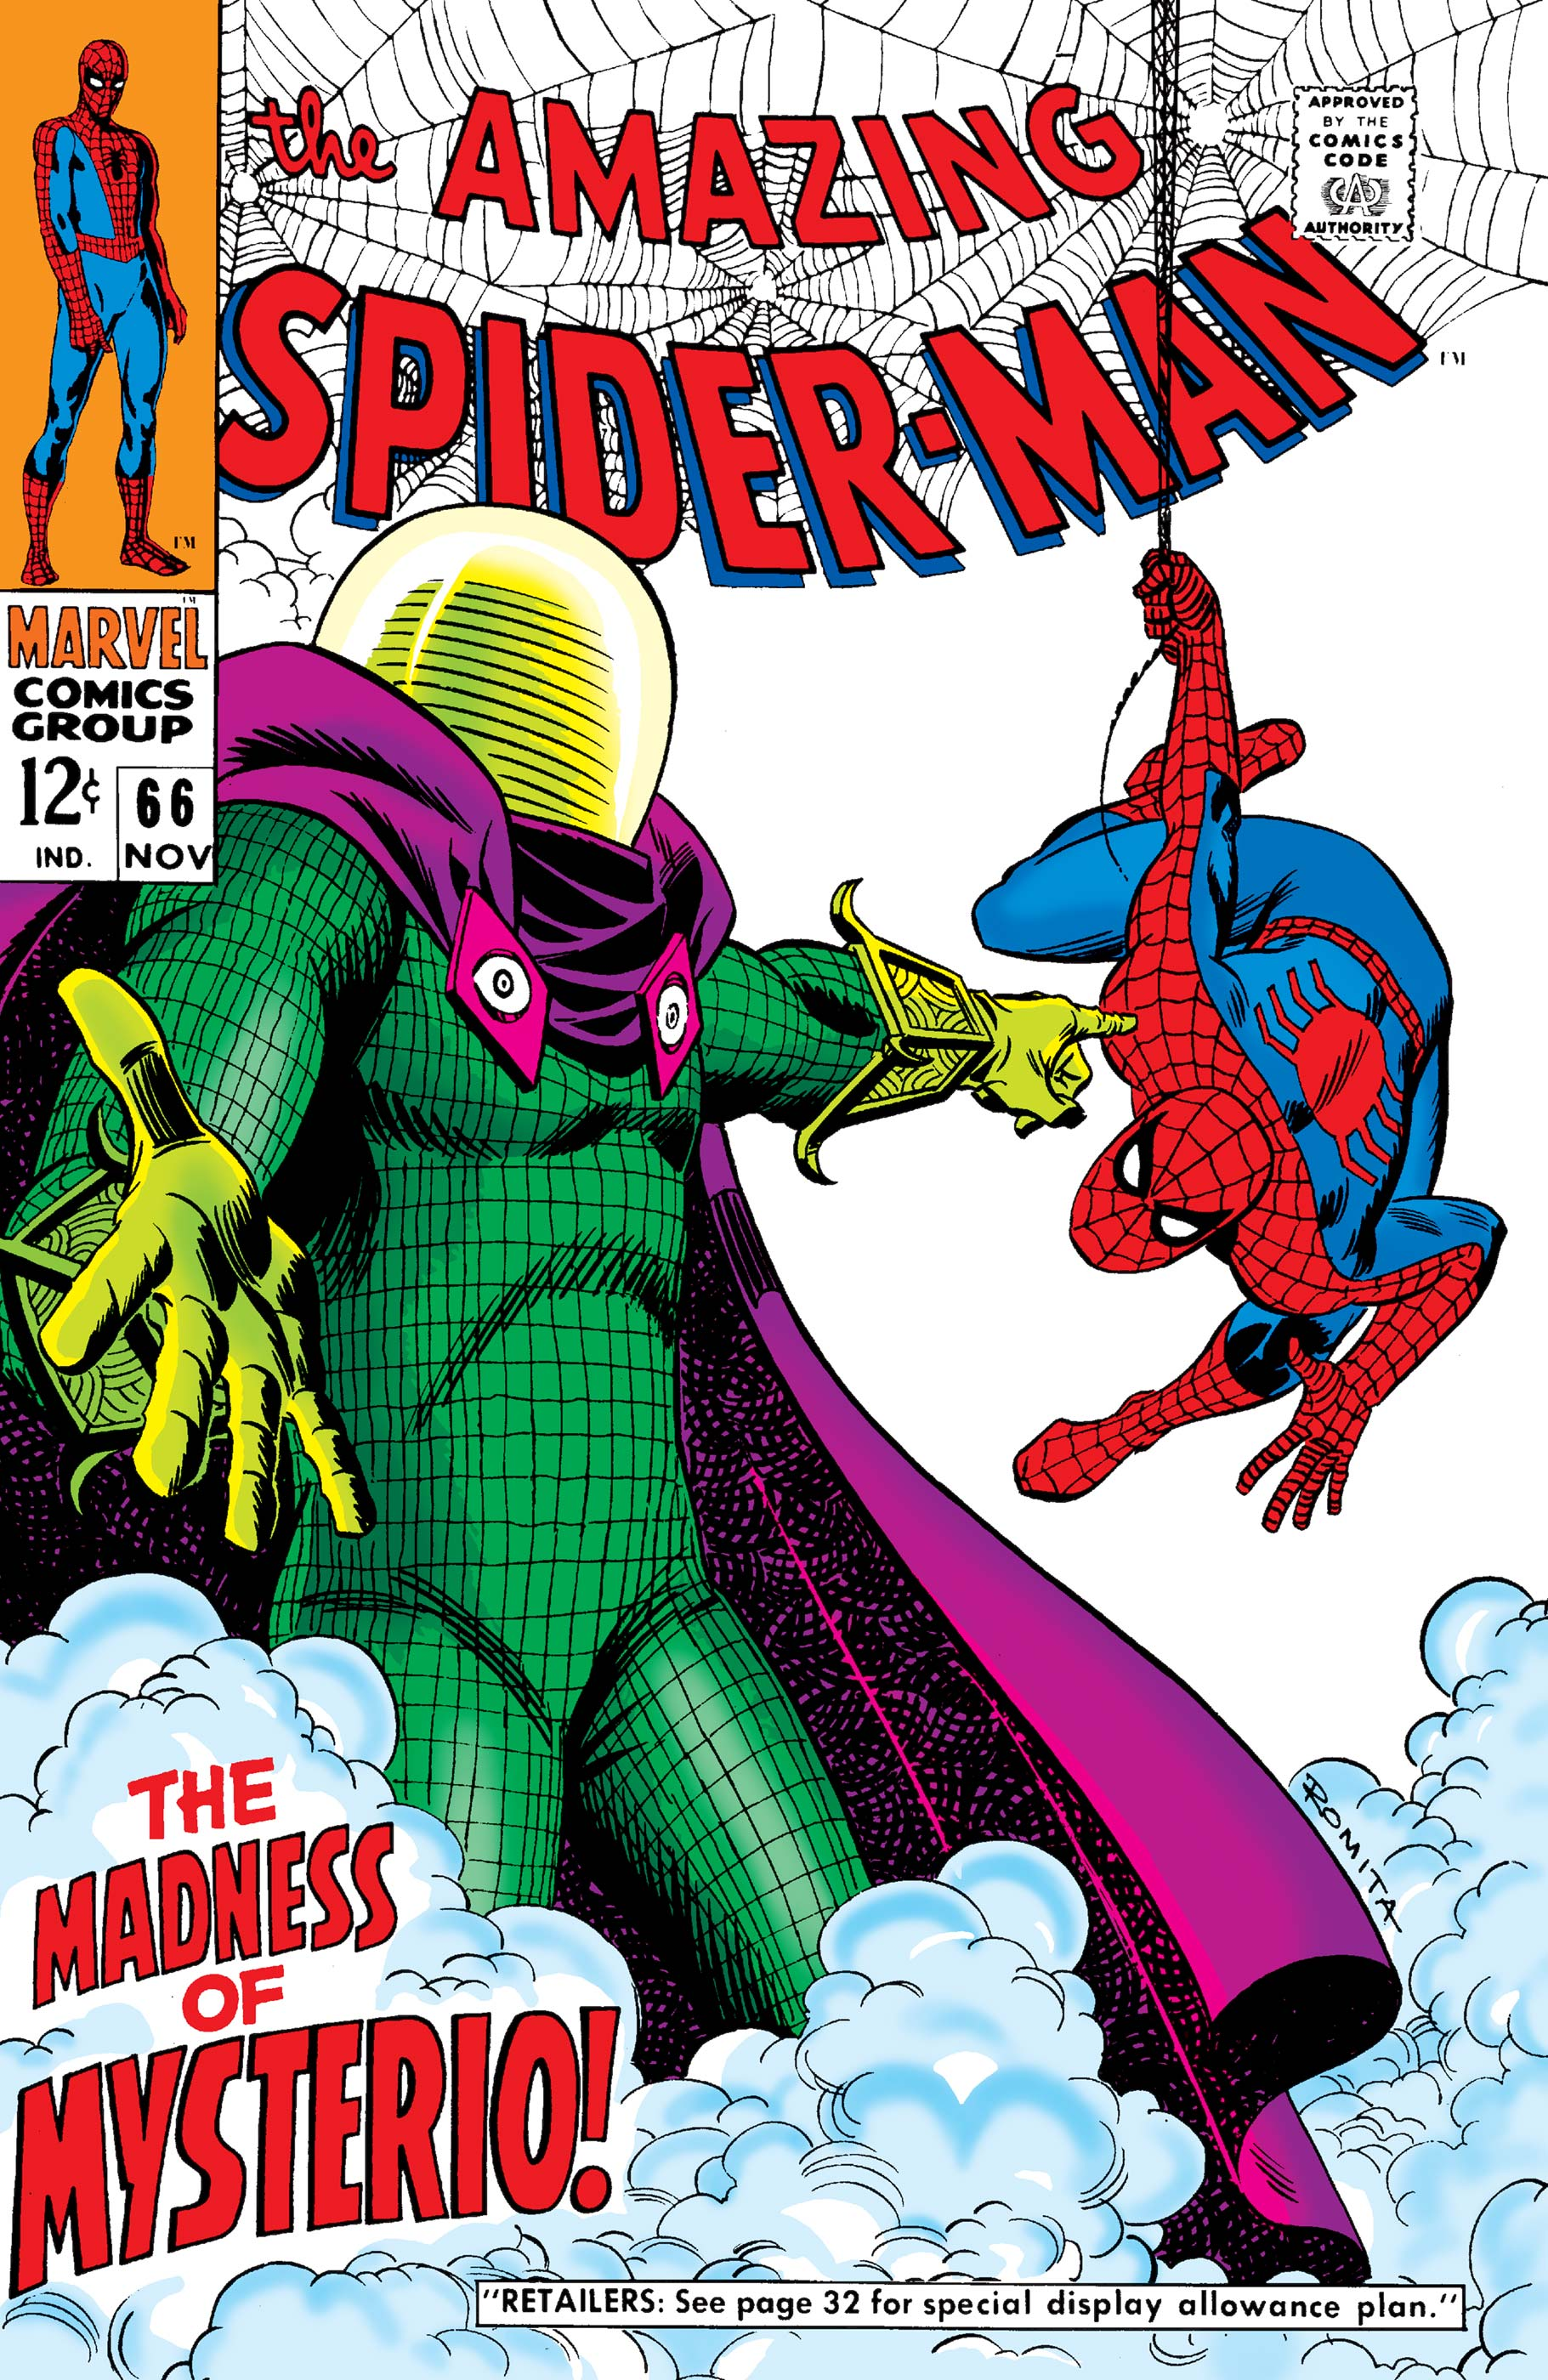 The Amazing Spider-Man (1963) #66